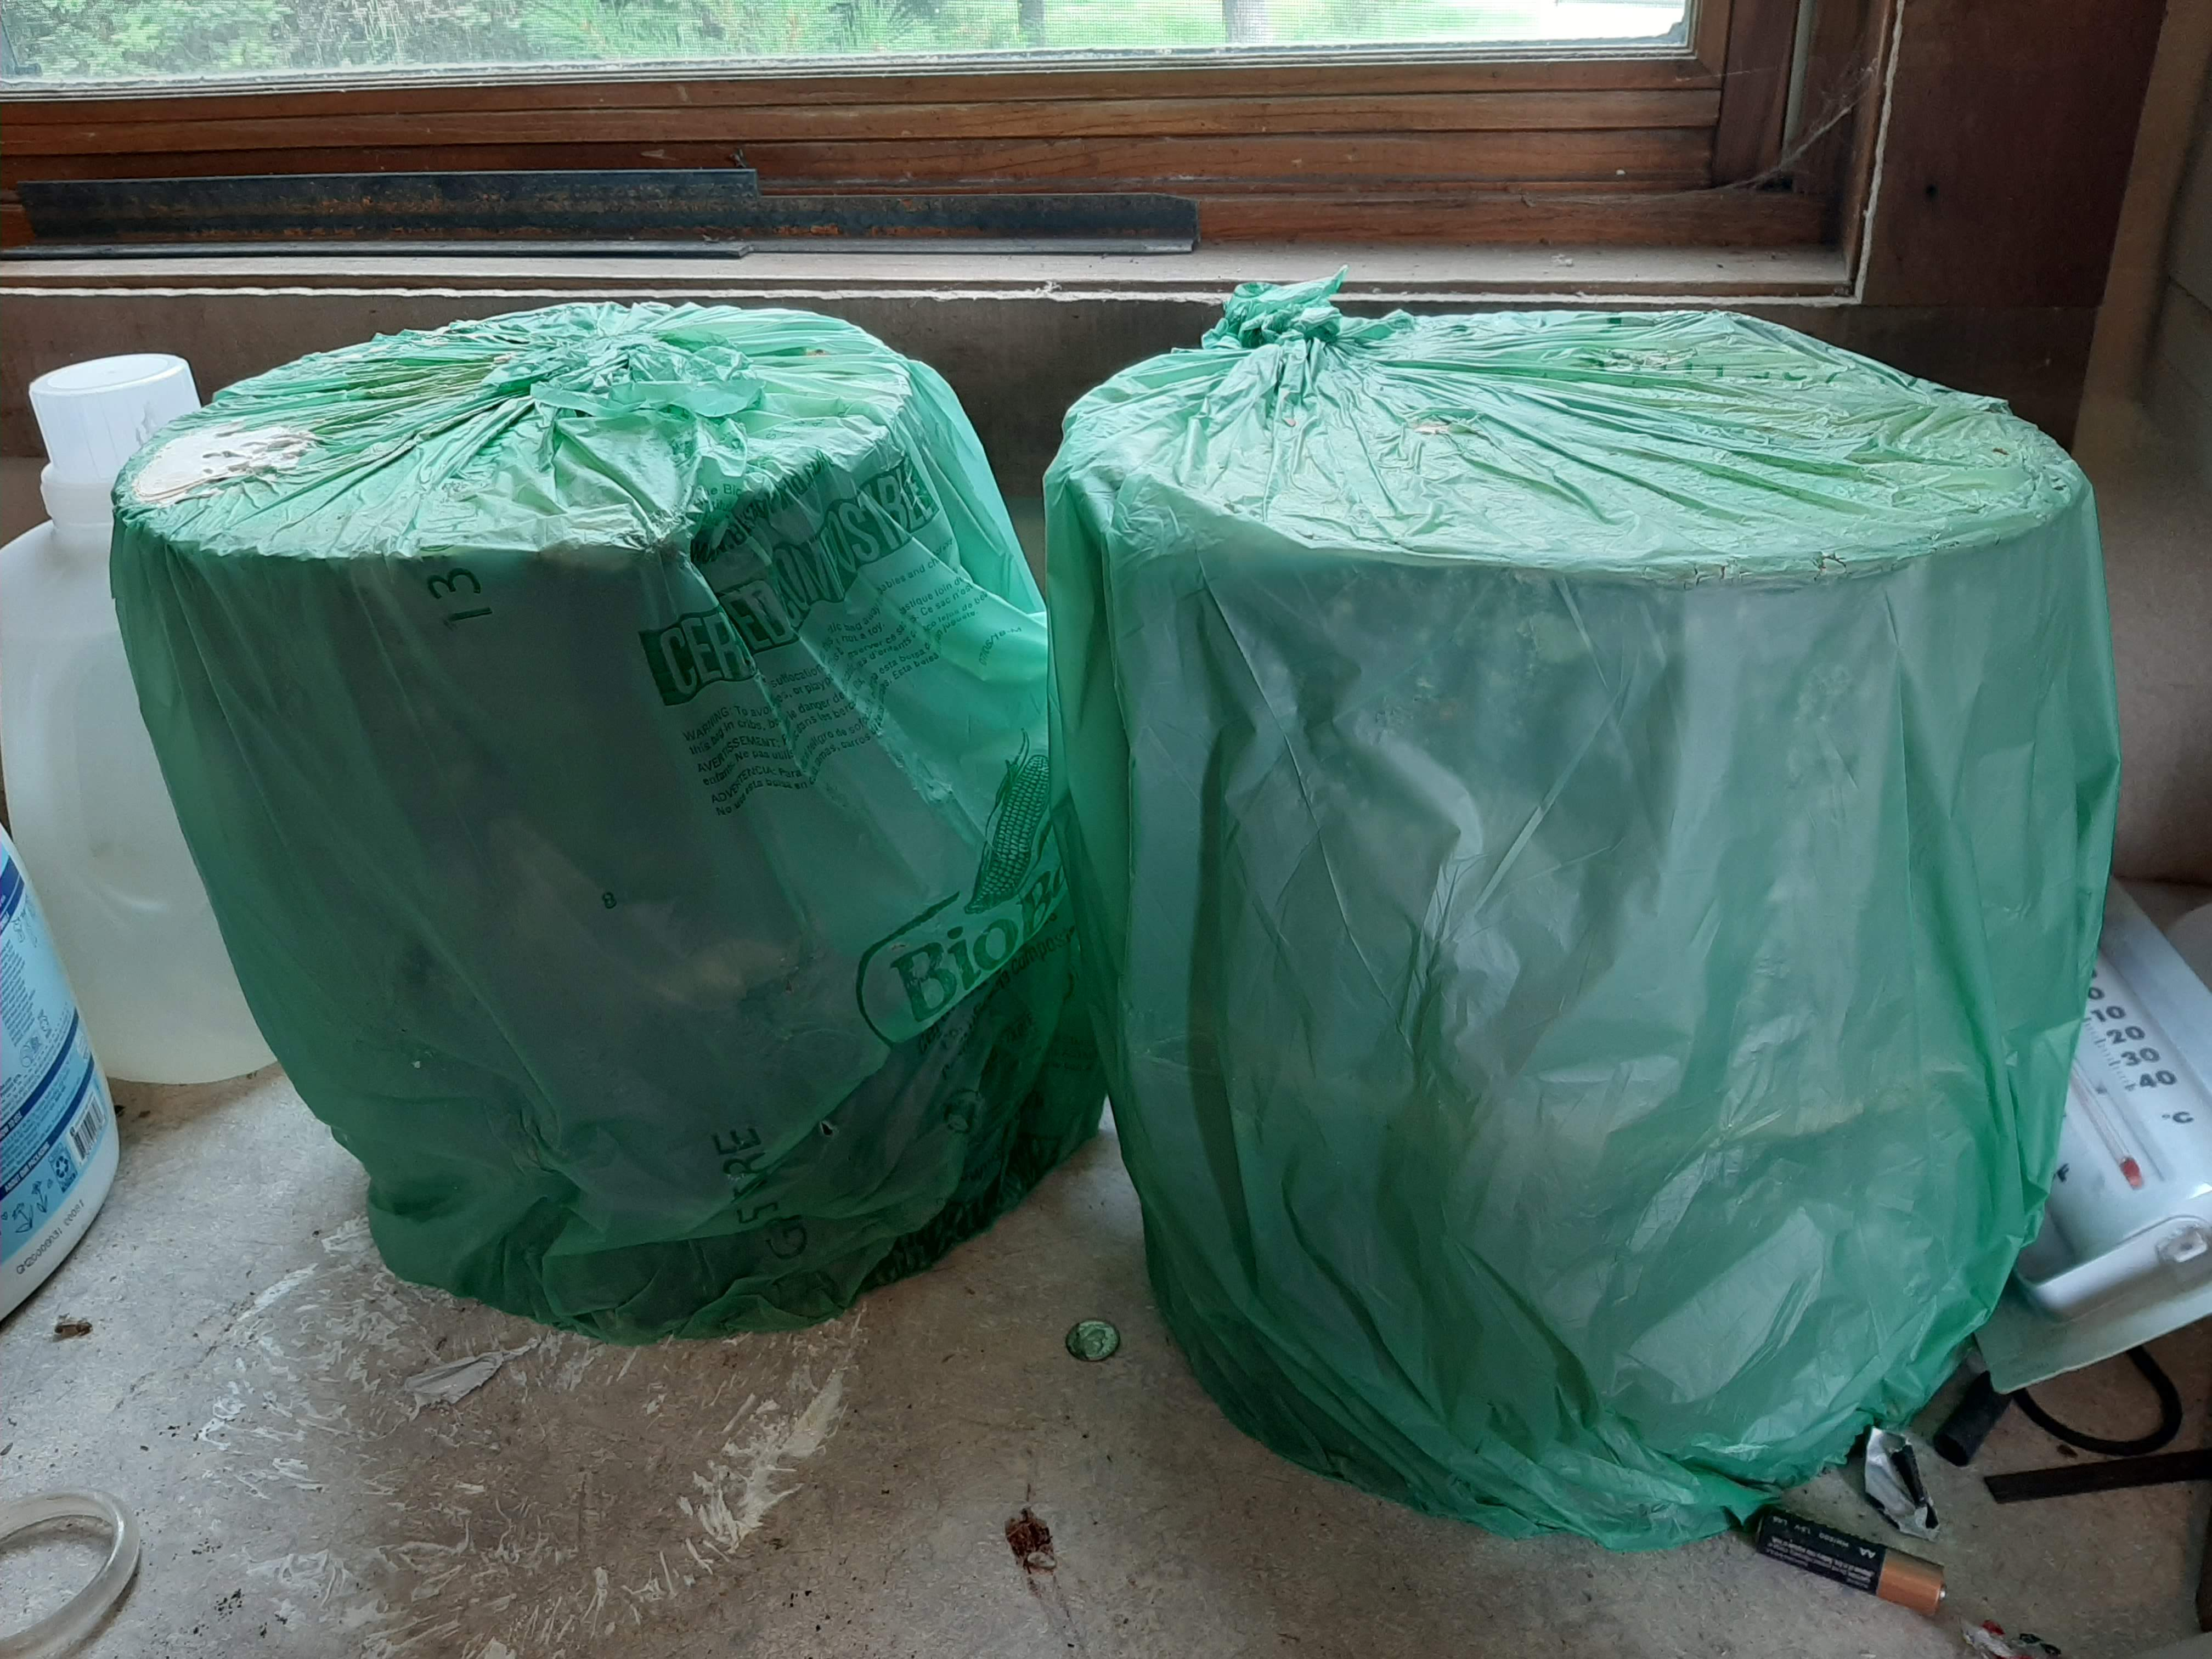 small logs wrapped in green plastic sitting on counter top